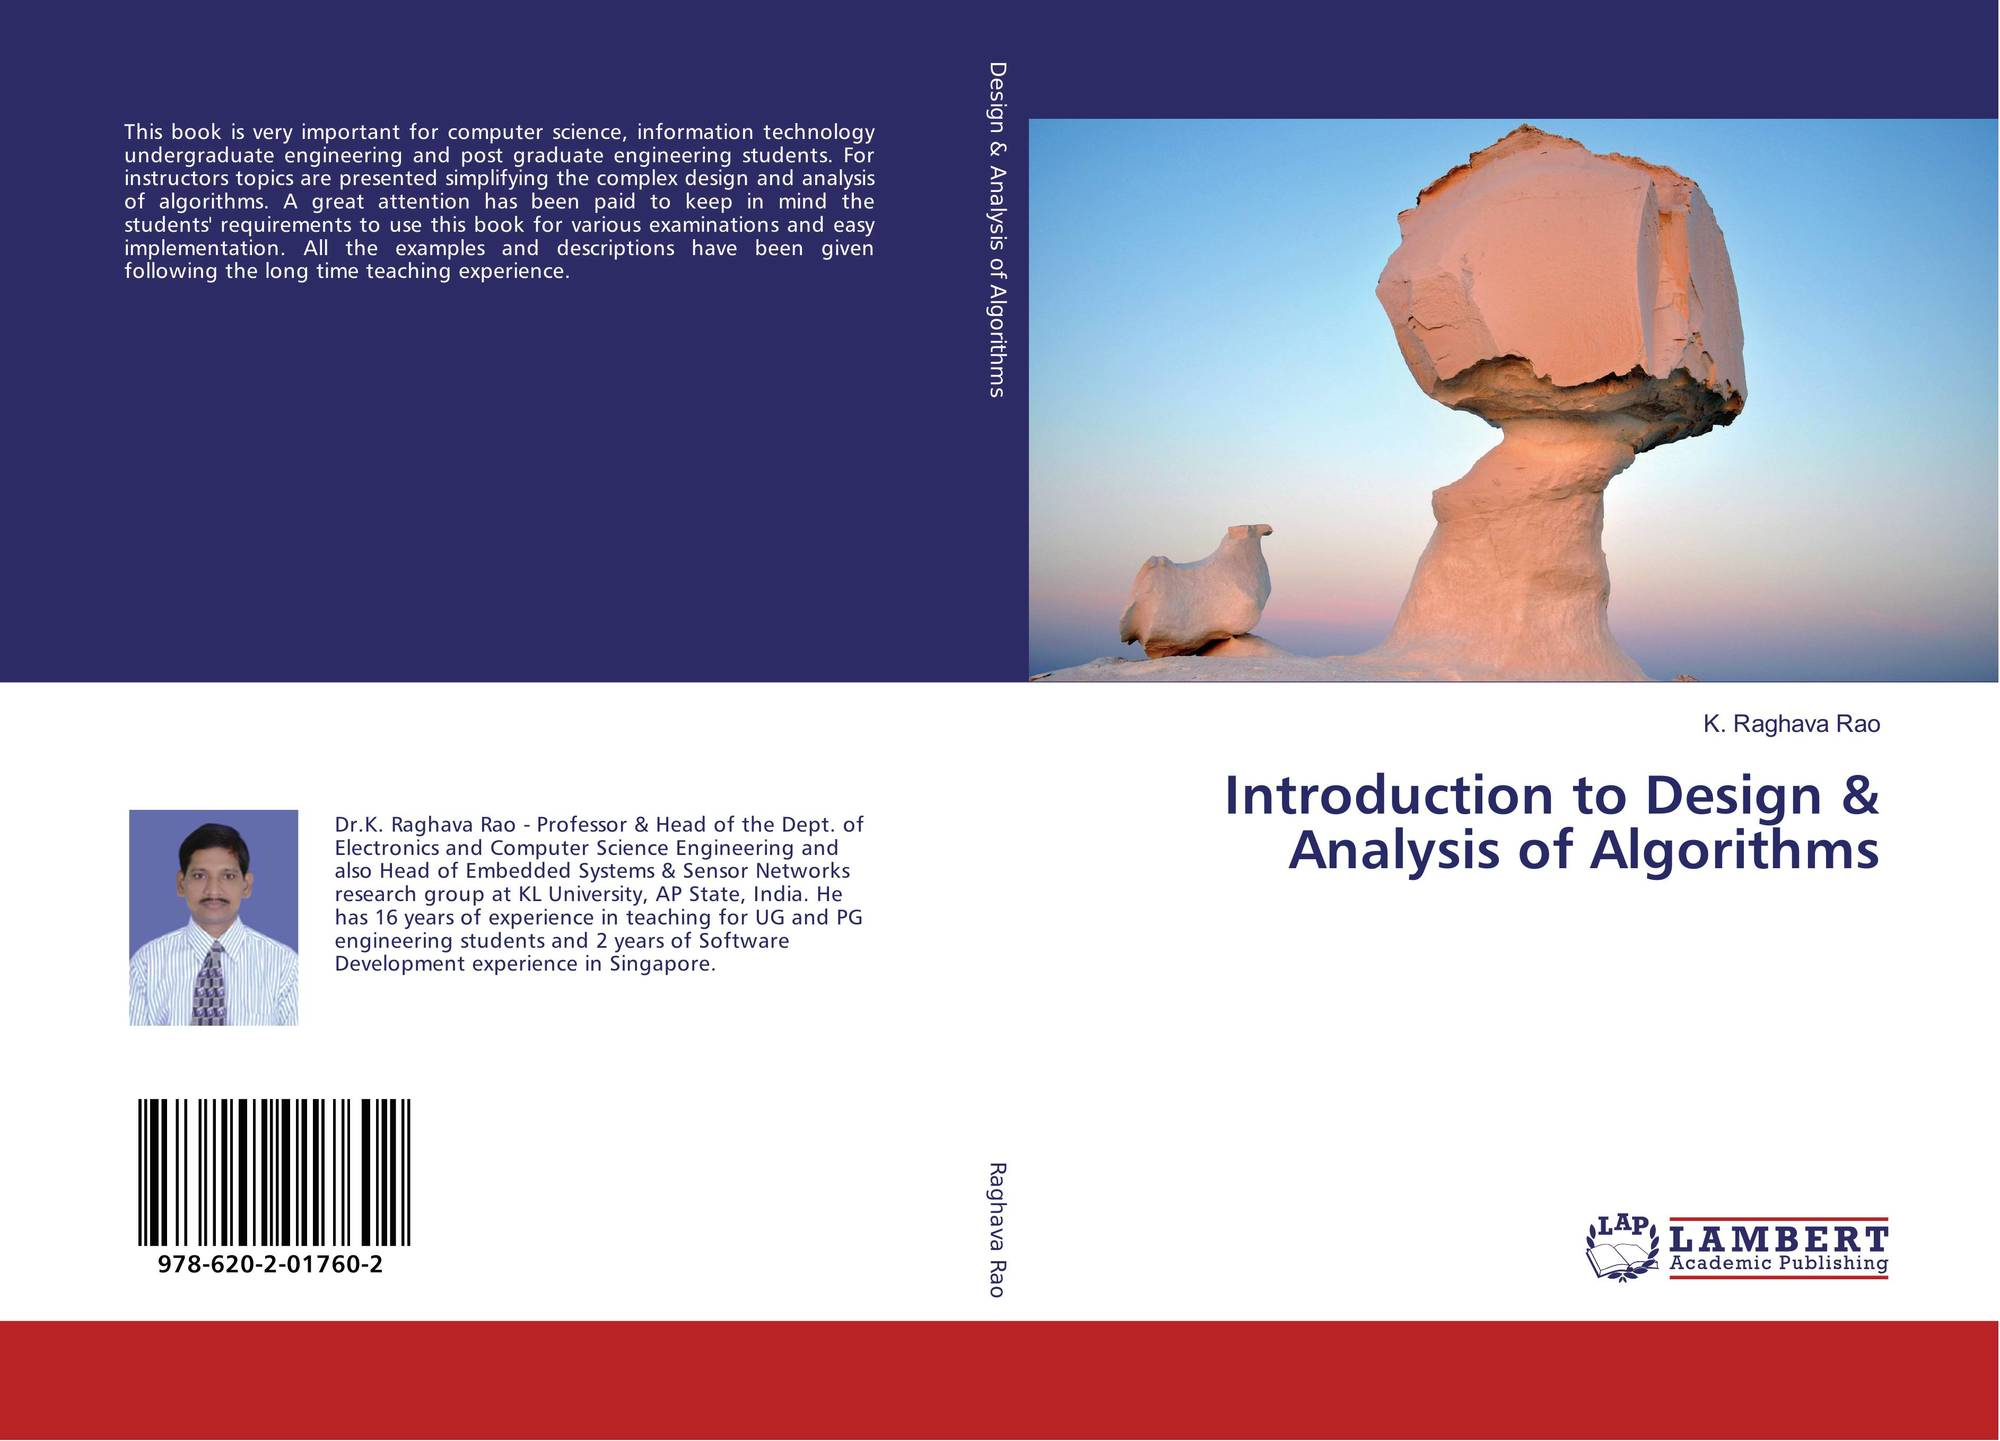 an introduction to the analysis of computing Since the 1994 release of the text introduction to parallel computing: design and analysis of algorithms by the same authors, the field of parallel computing has undergone significant changes.